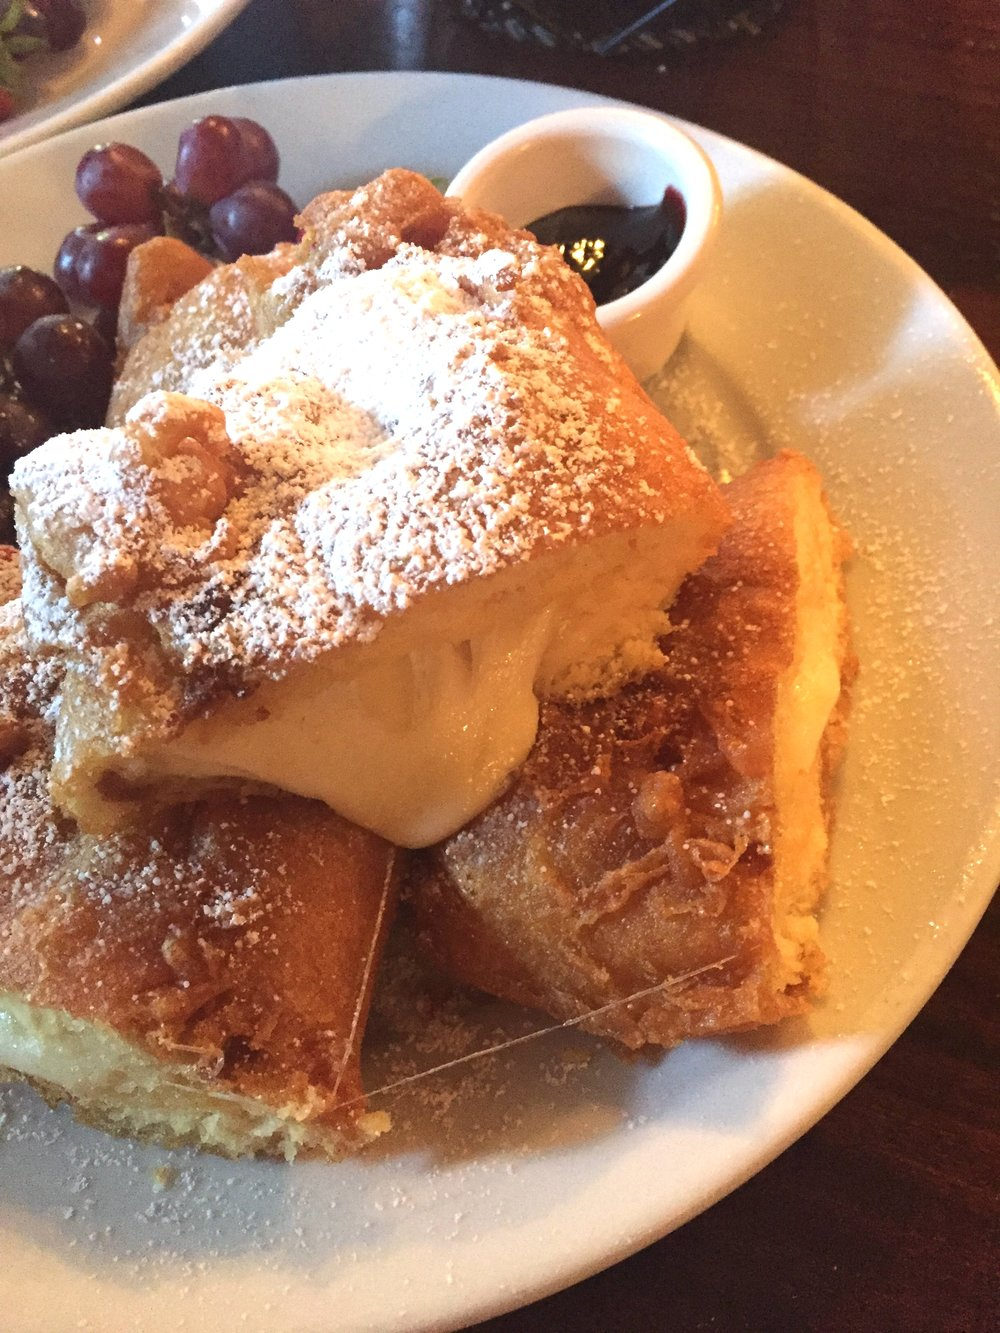 Do your stomach a favor and avoid the 3-Cheese Monte Cristo sandwich. You don't want something this heavy in your gut when you're going on rides and walking for miles. Cafe Orleans, if you read this, please please please at the very least serve this sandwich with a side salad or some steamed veggies.